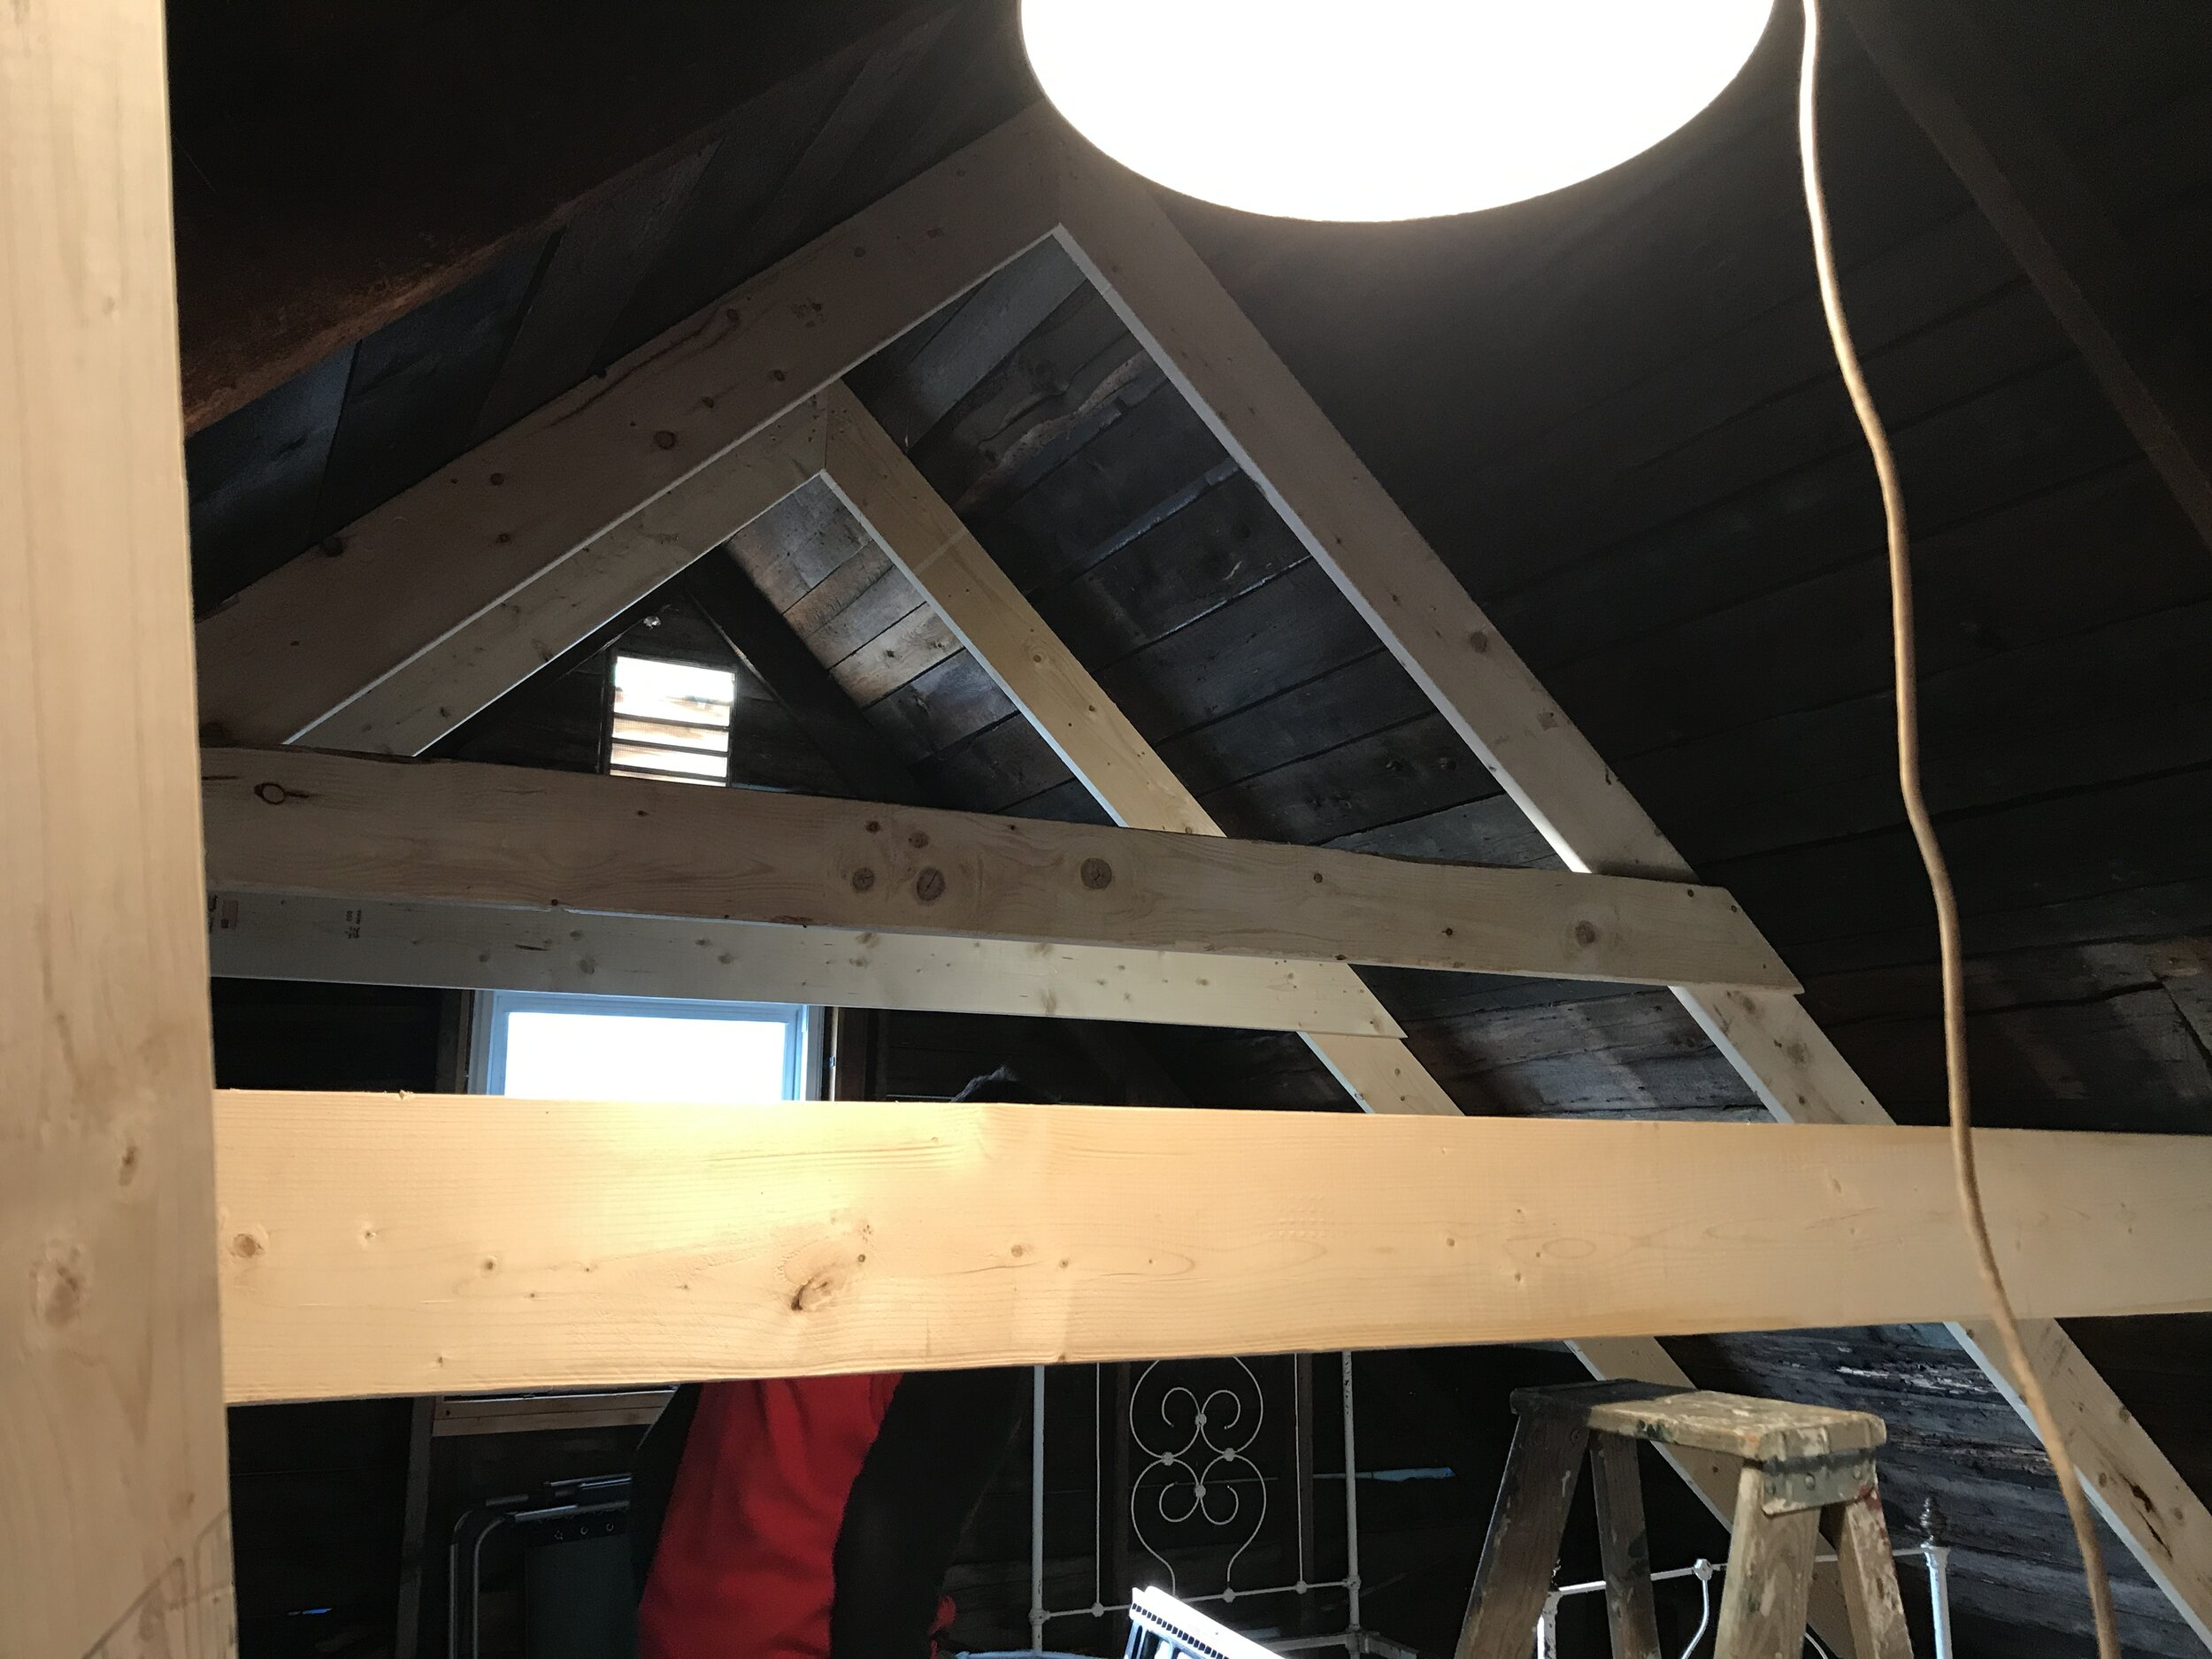 New rafters, shoring up the old ones, before adding new ones in between.